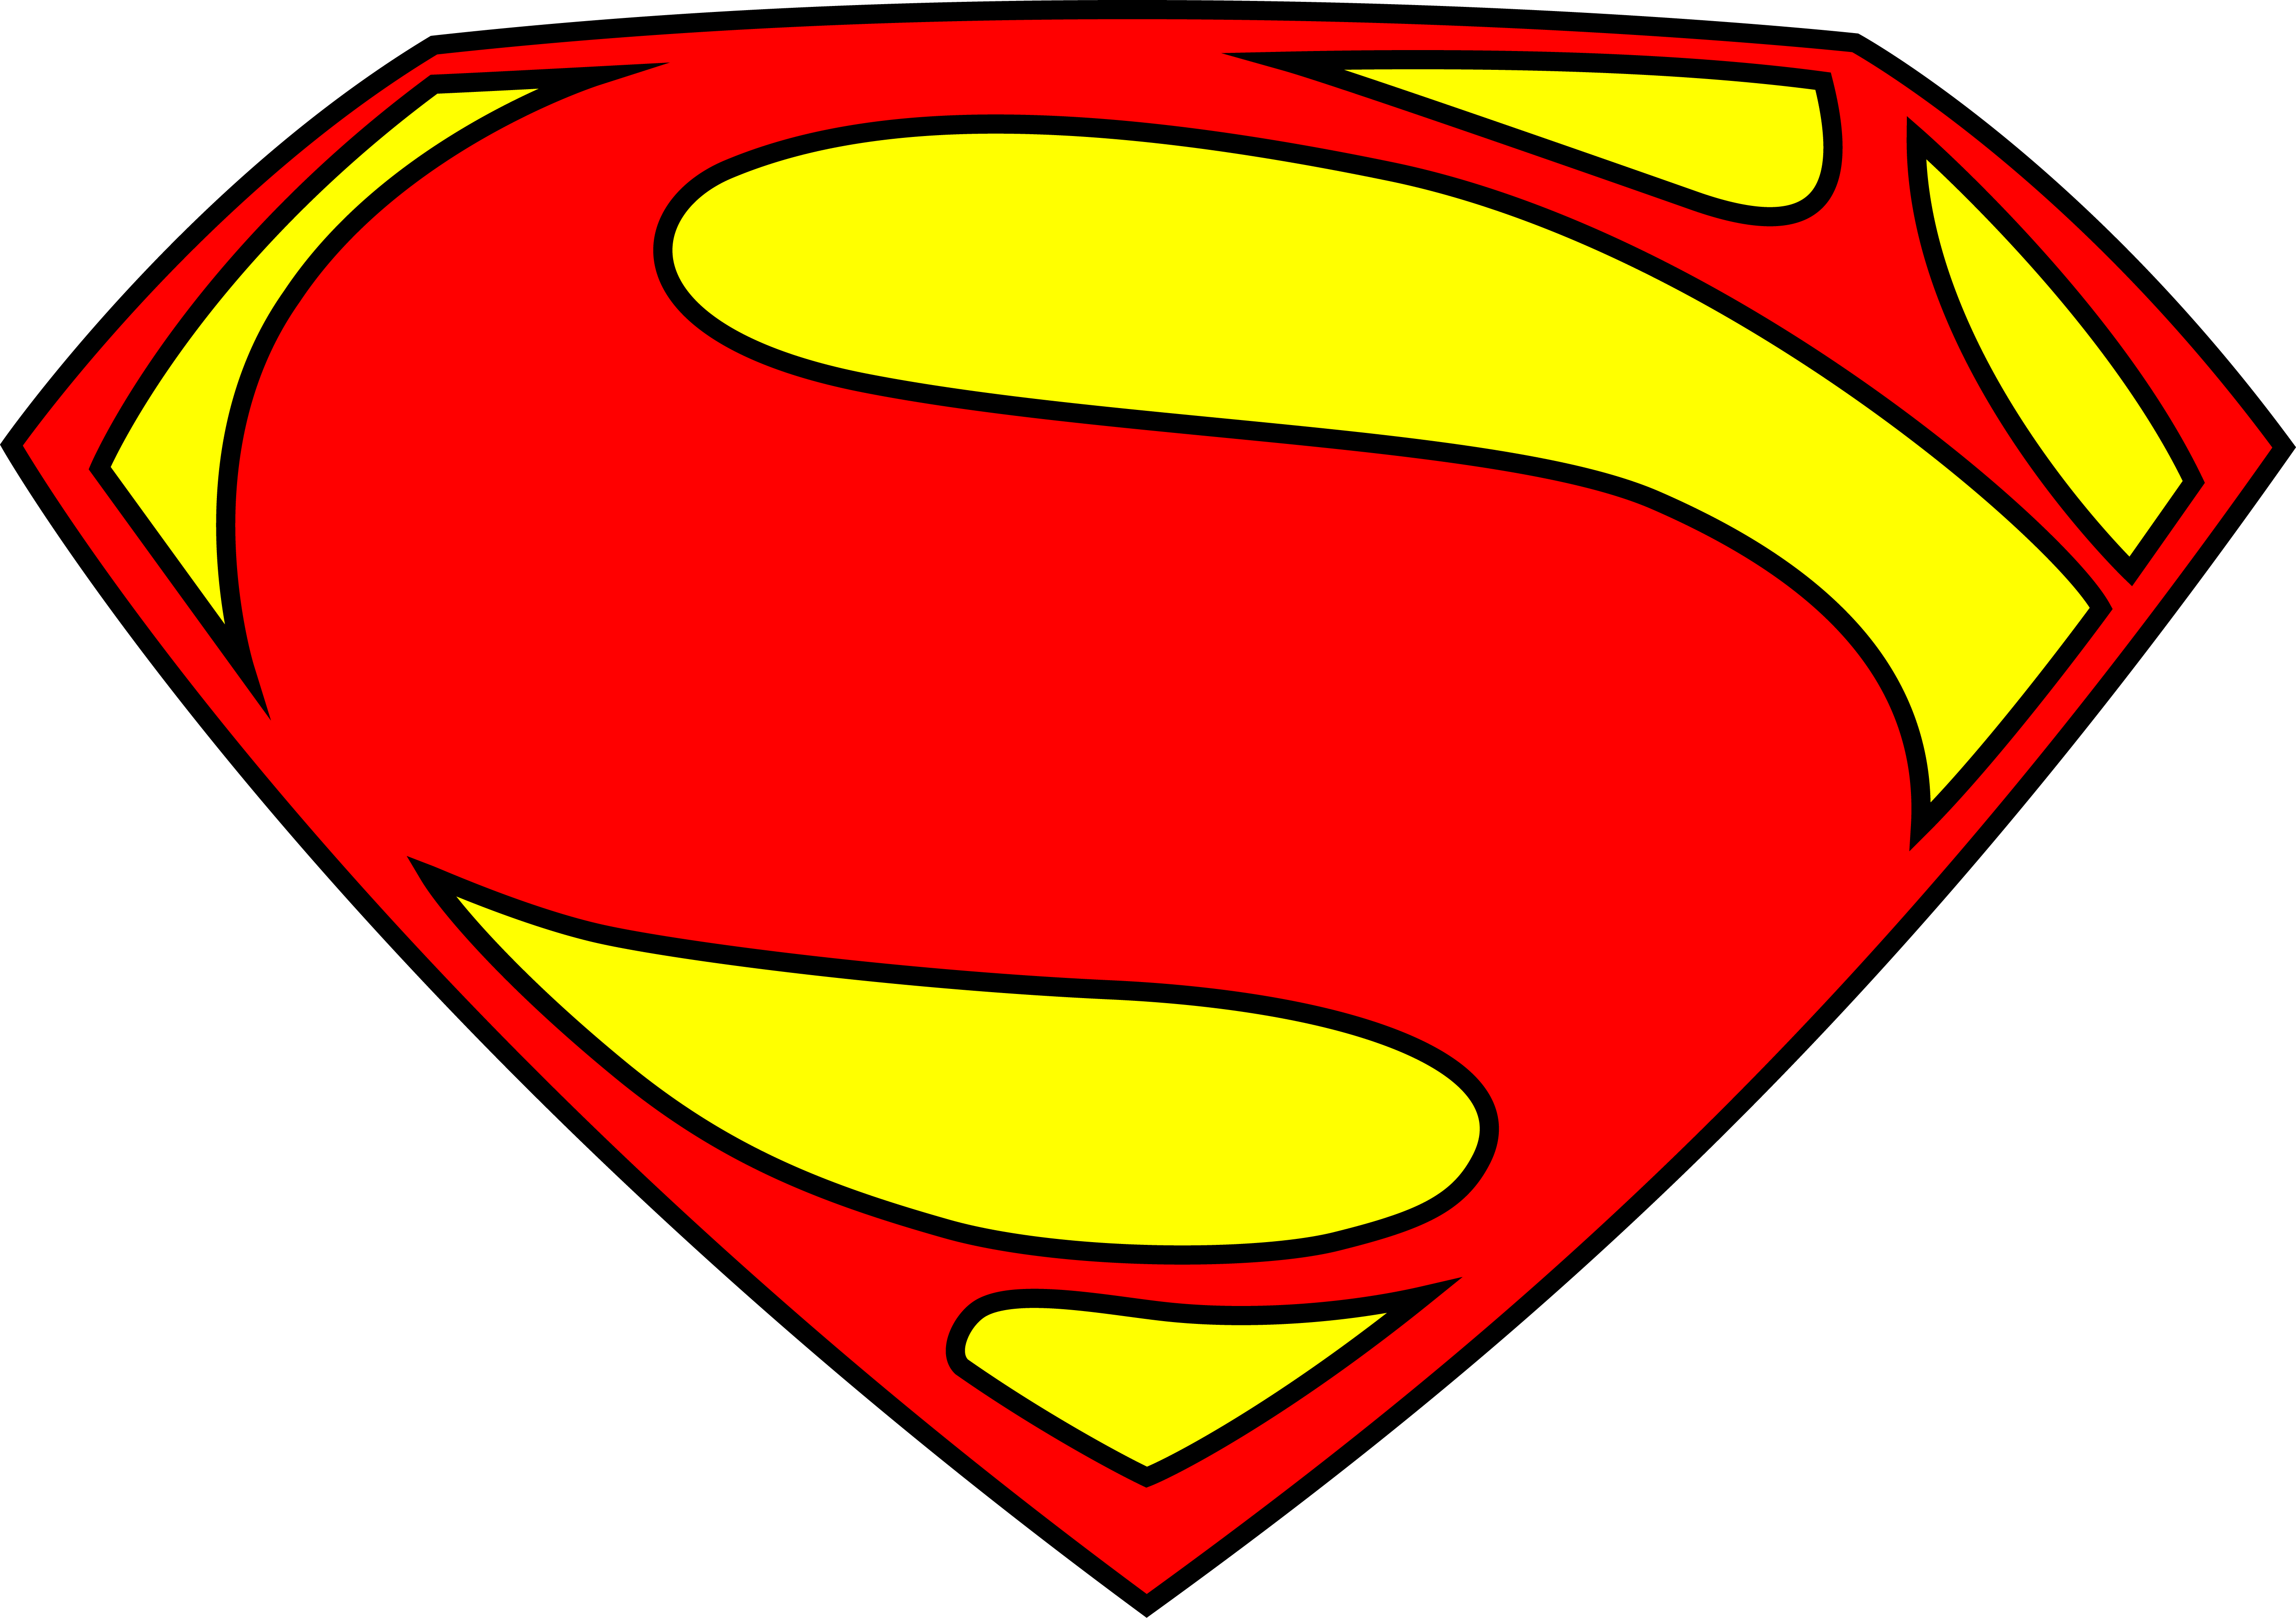 Icon Superman Vectors Free Download image #19808